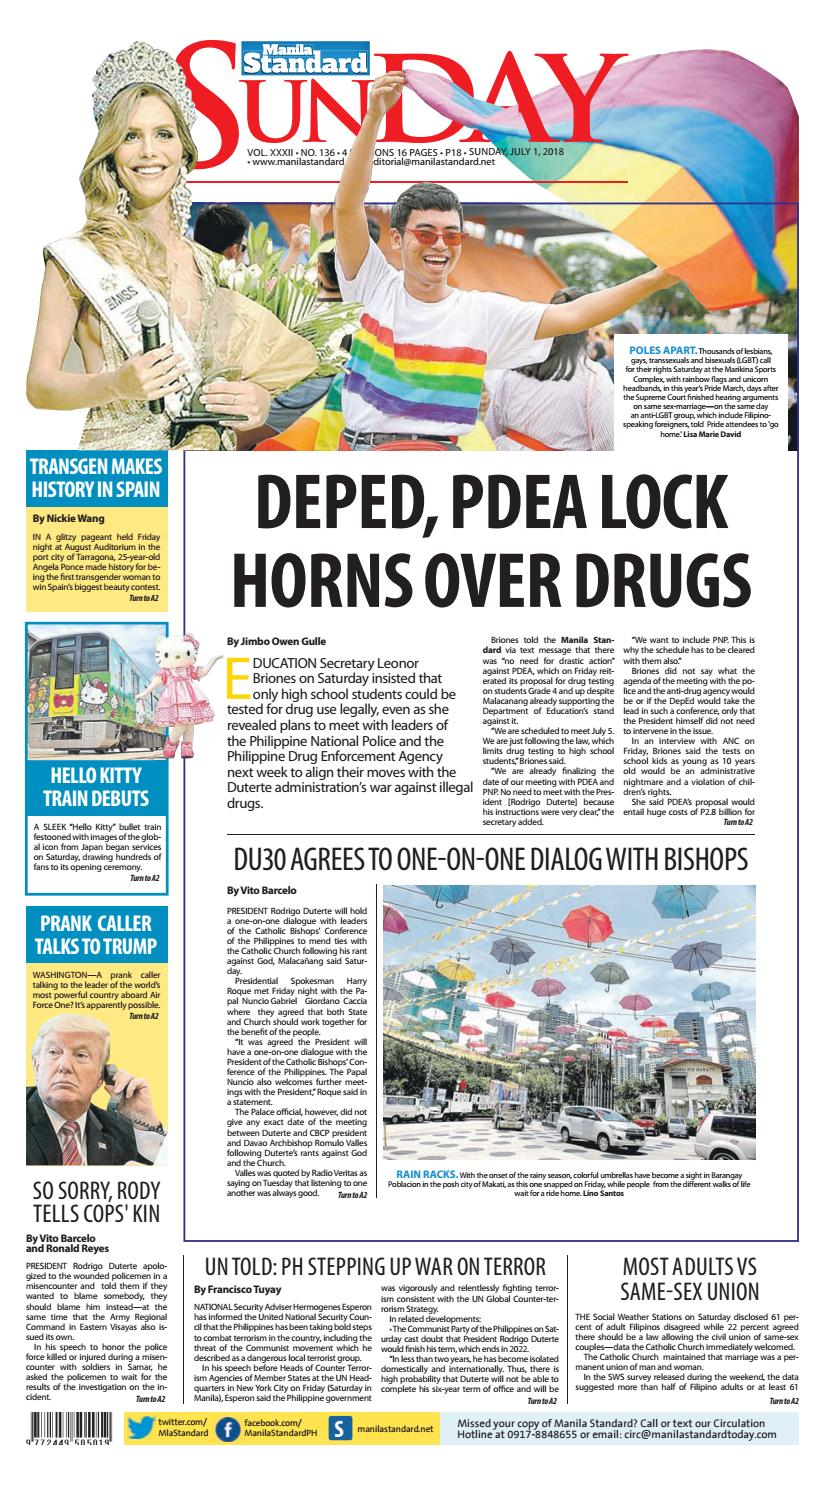 Manila Standard - 2018 July 1 - Sunday